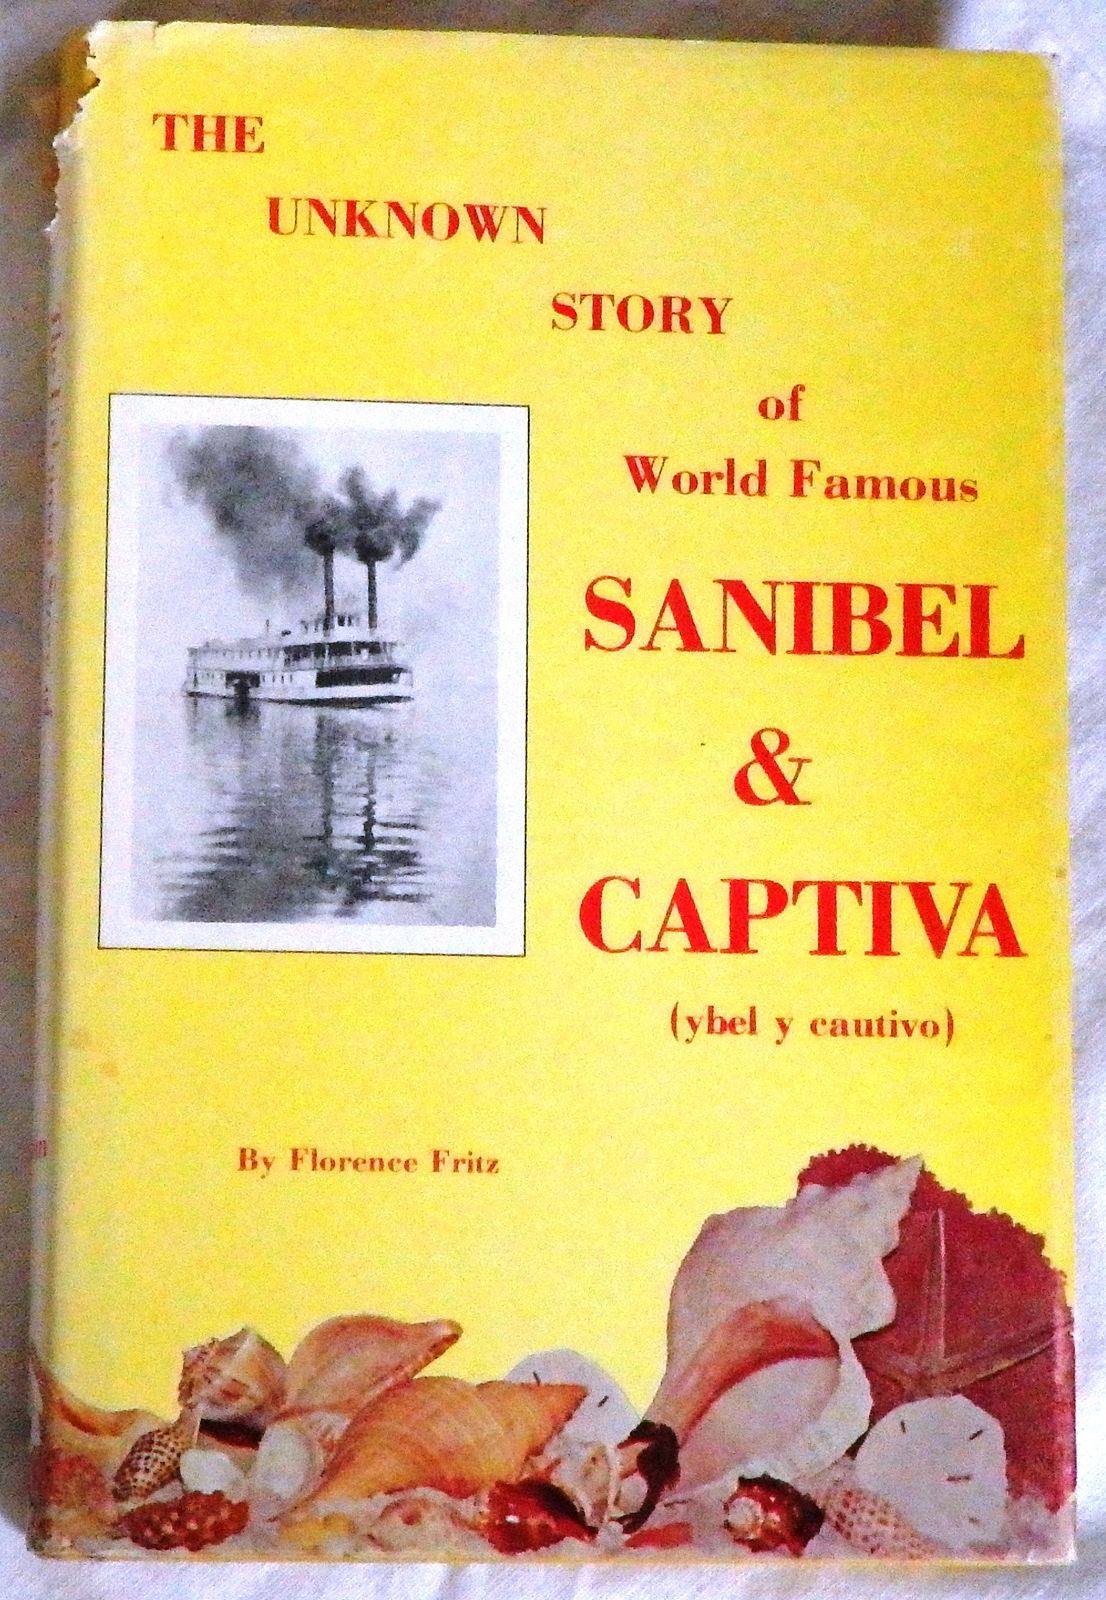 The Unknown Story of World Famous Sanibel & Captiva (Ybel y Cautivo) by  Florence Fritz - Hardcover - 1975 - from Bark'N Books and Biblio com